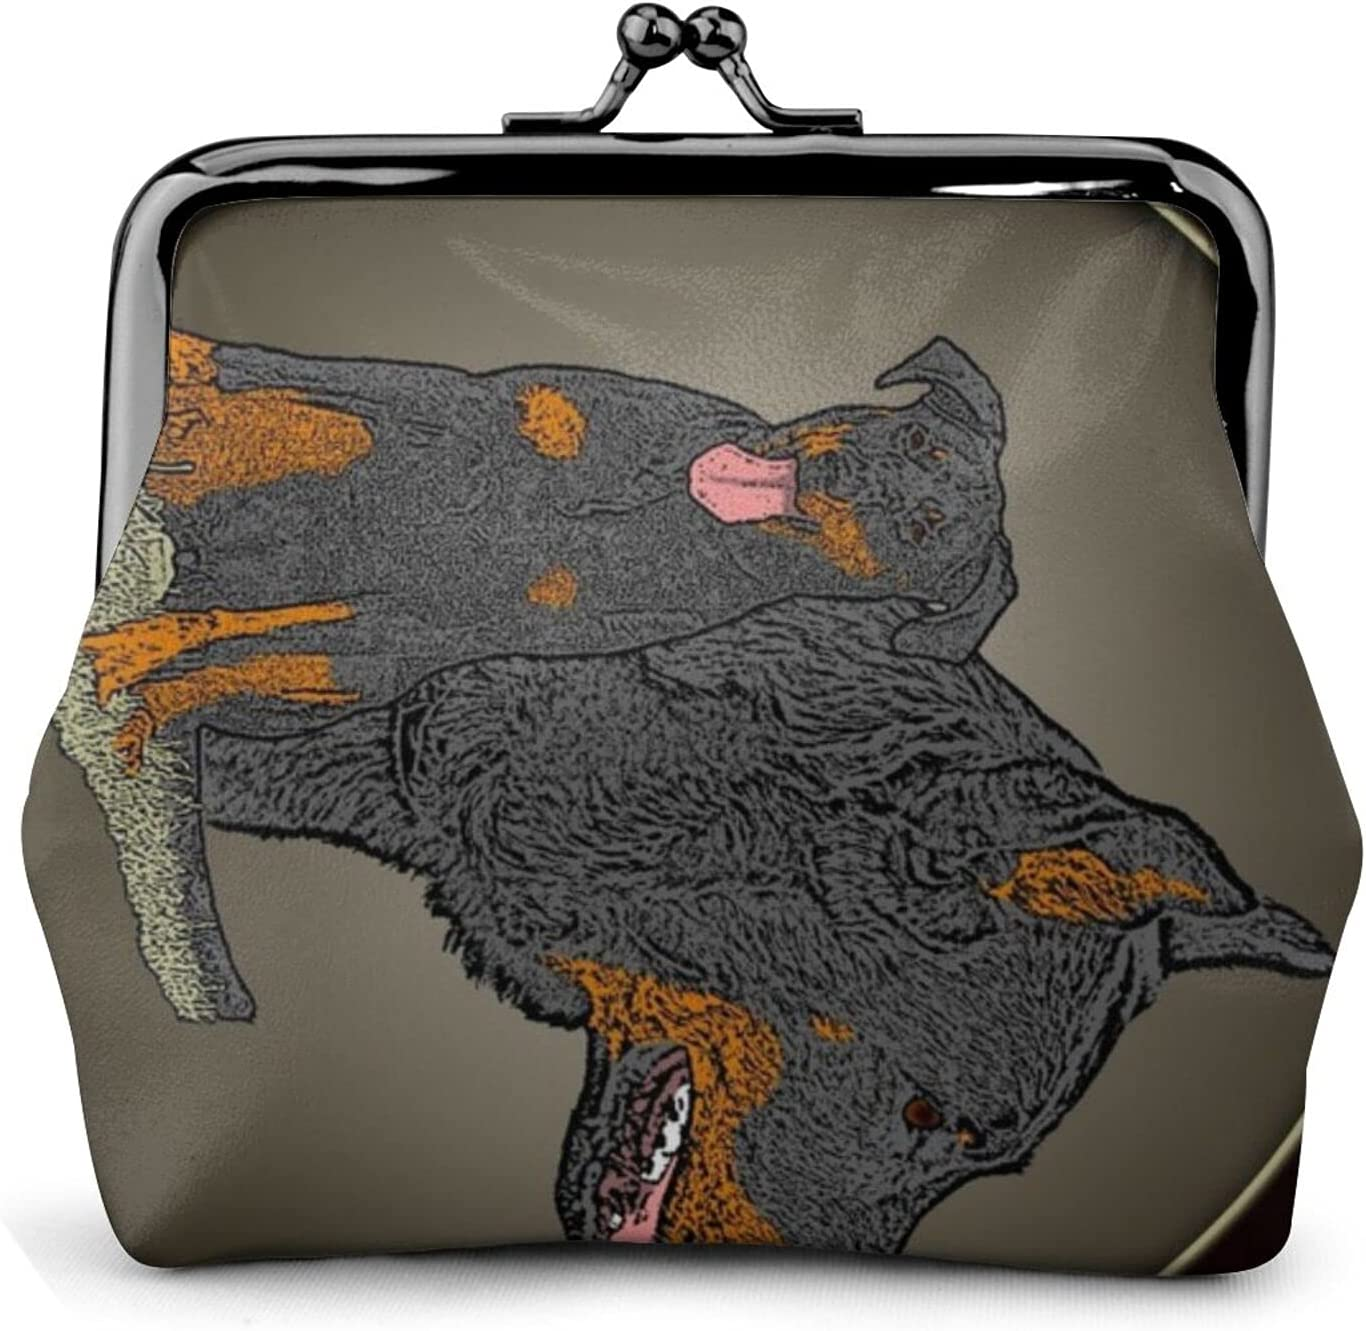 Beauceron Garden Flag 336 Coin Purse Retro Money Pouch with Kiss-lock Buckle Small Wallet for Women and Girls